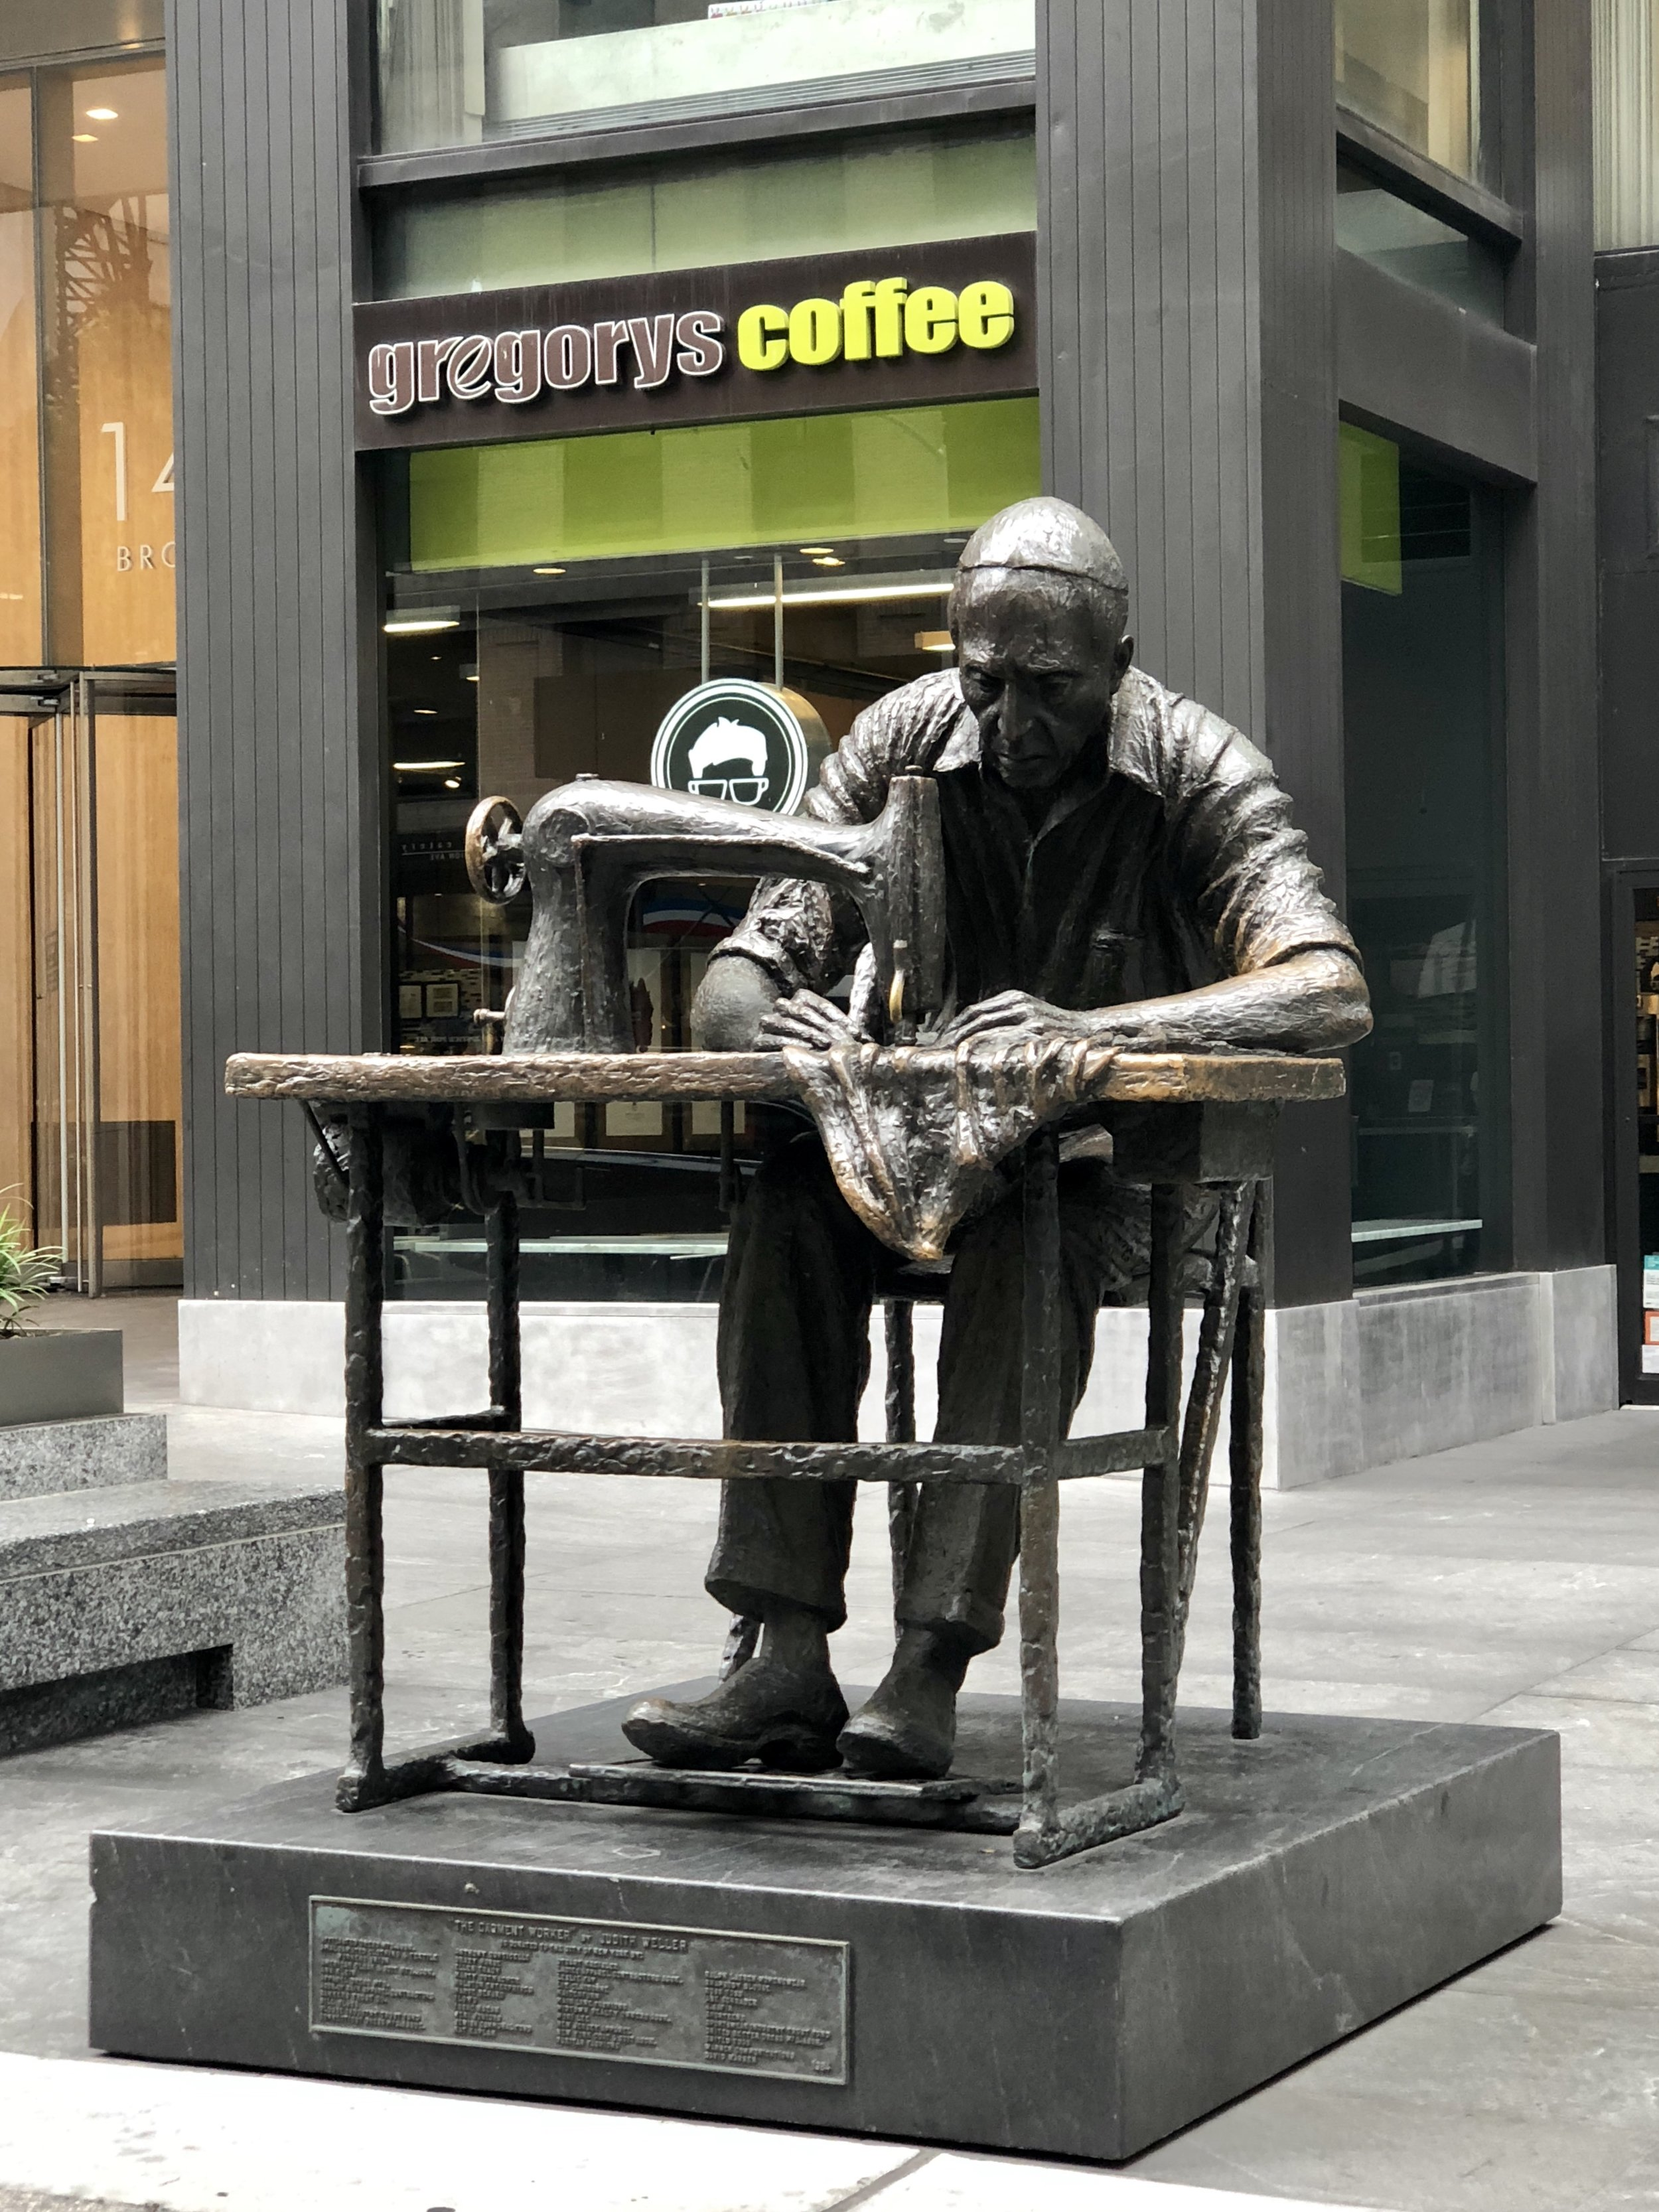 I guess, this statue represents the Fashion Ave or Garment District which is 7th Ave.